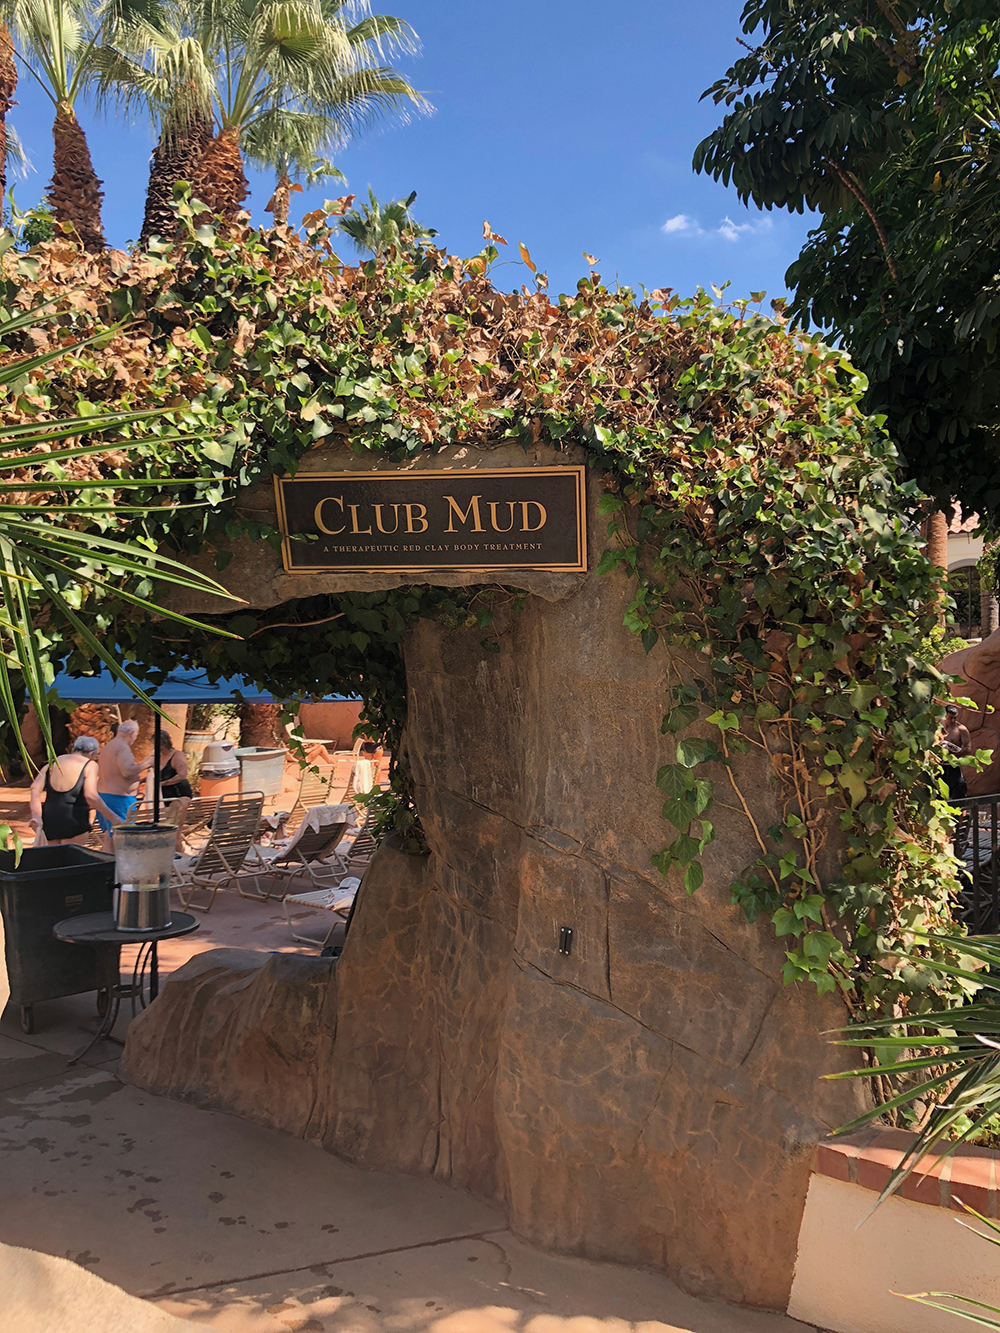 Club Mud features a spring water mud pool that exfoliates and cleanses skin.